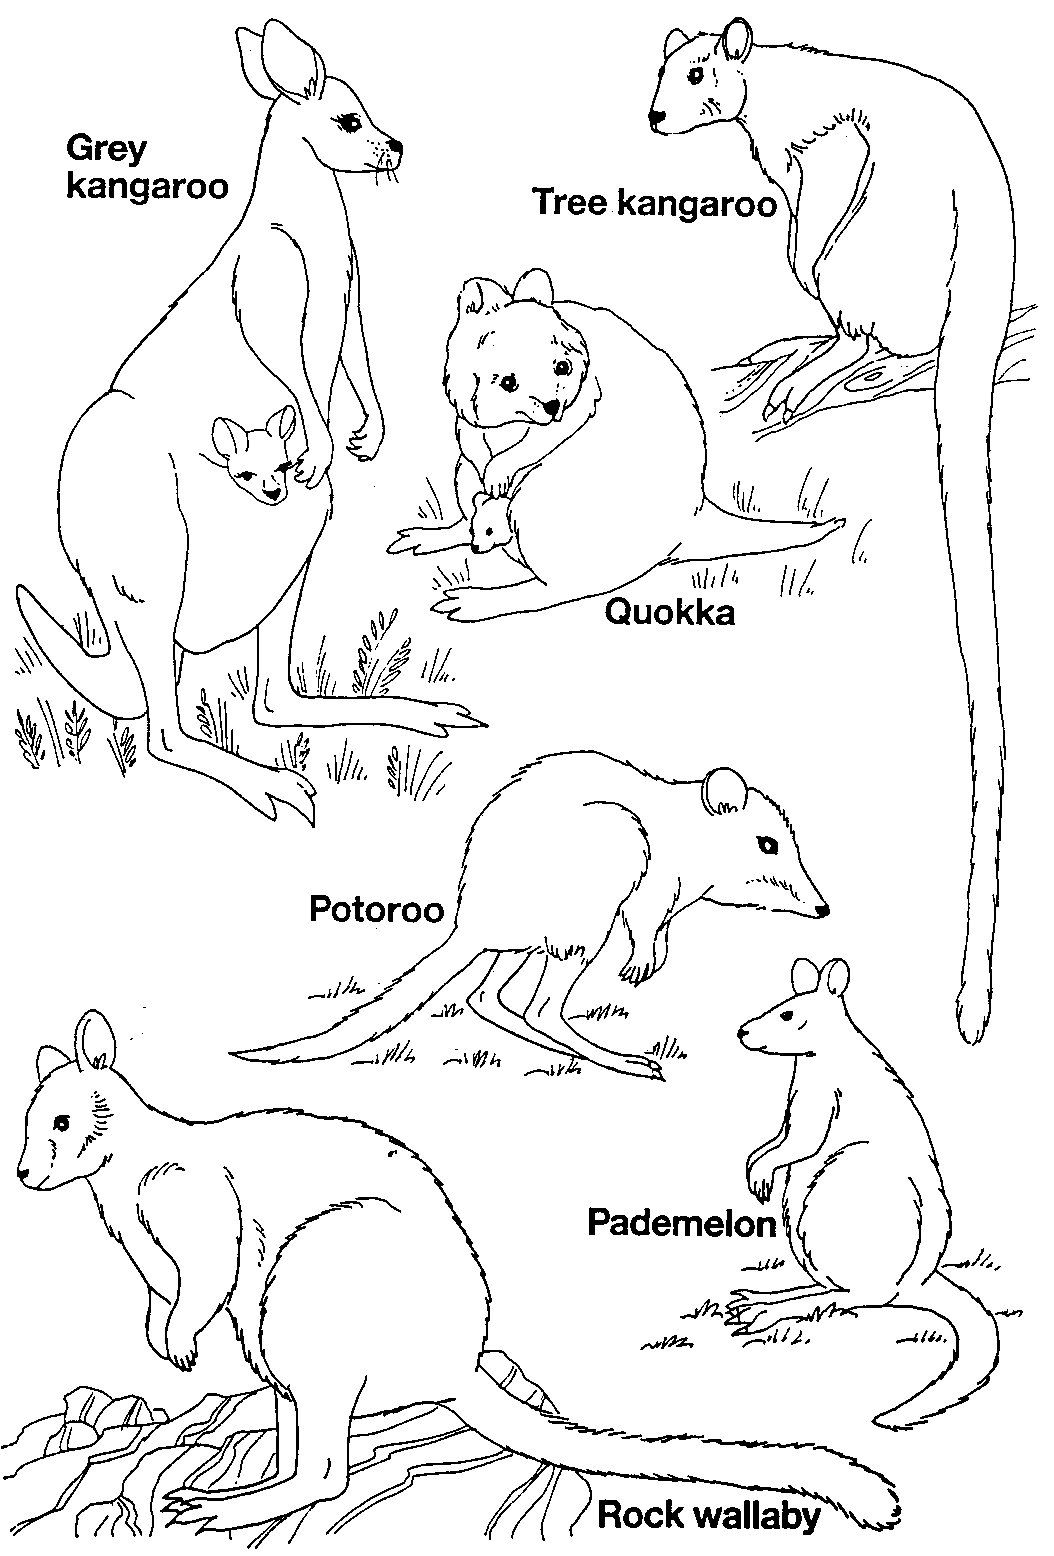 zoo map coloring page coloring page the zoo illustration for the children page zoo coloring map